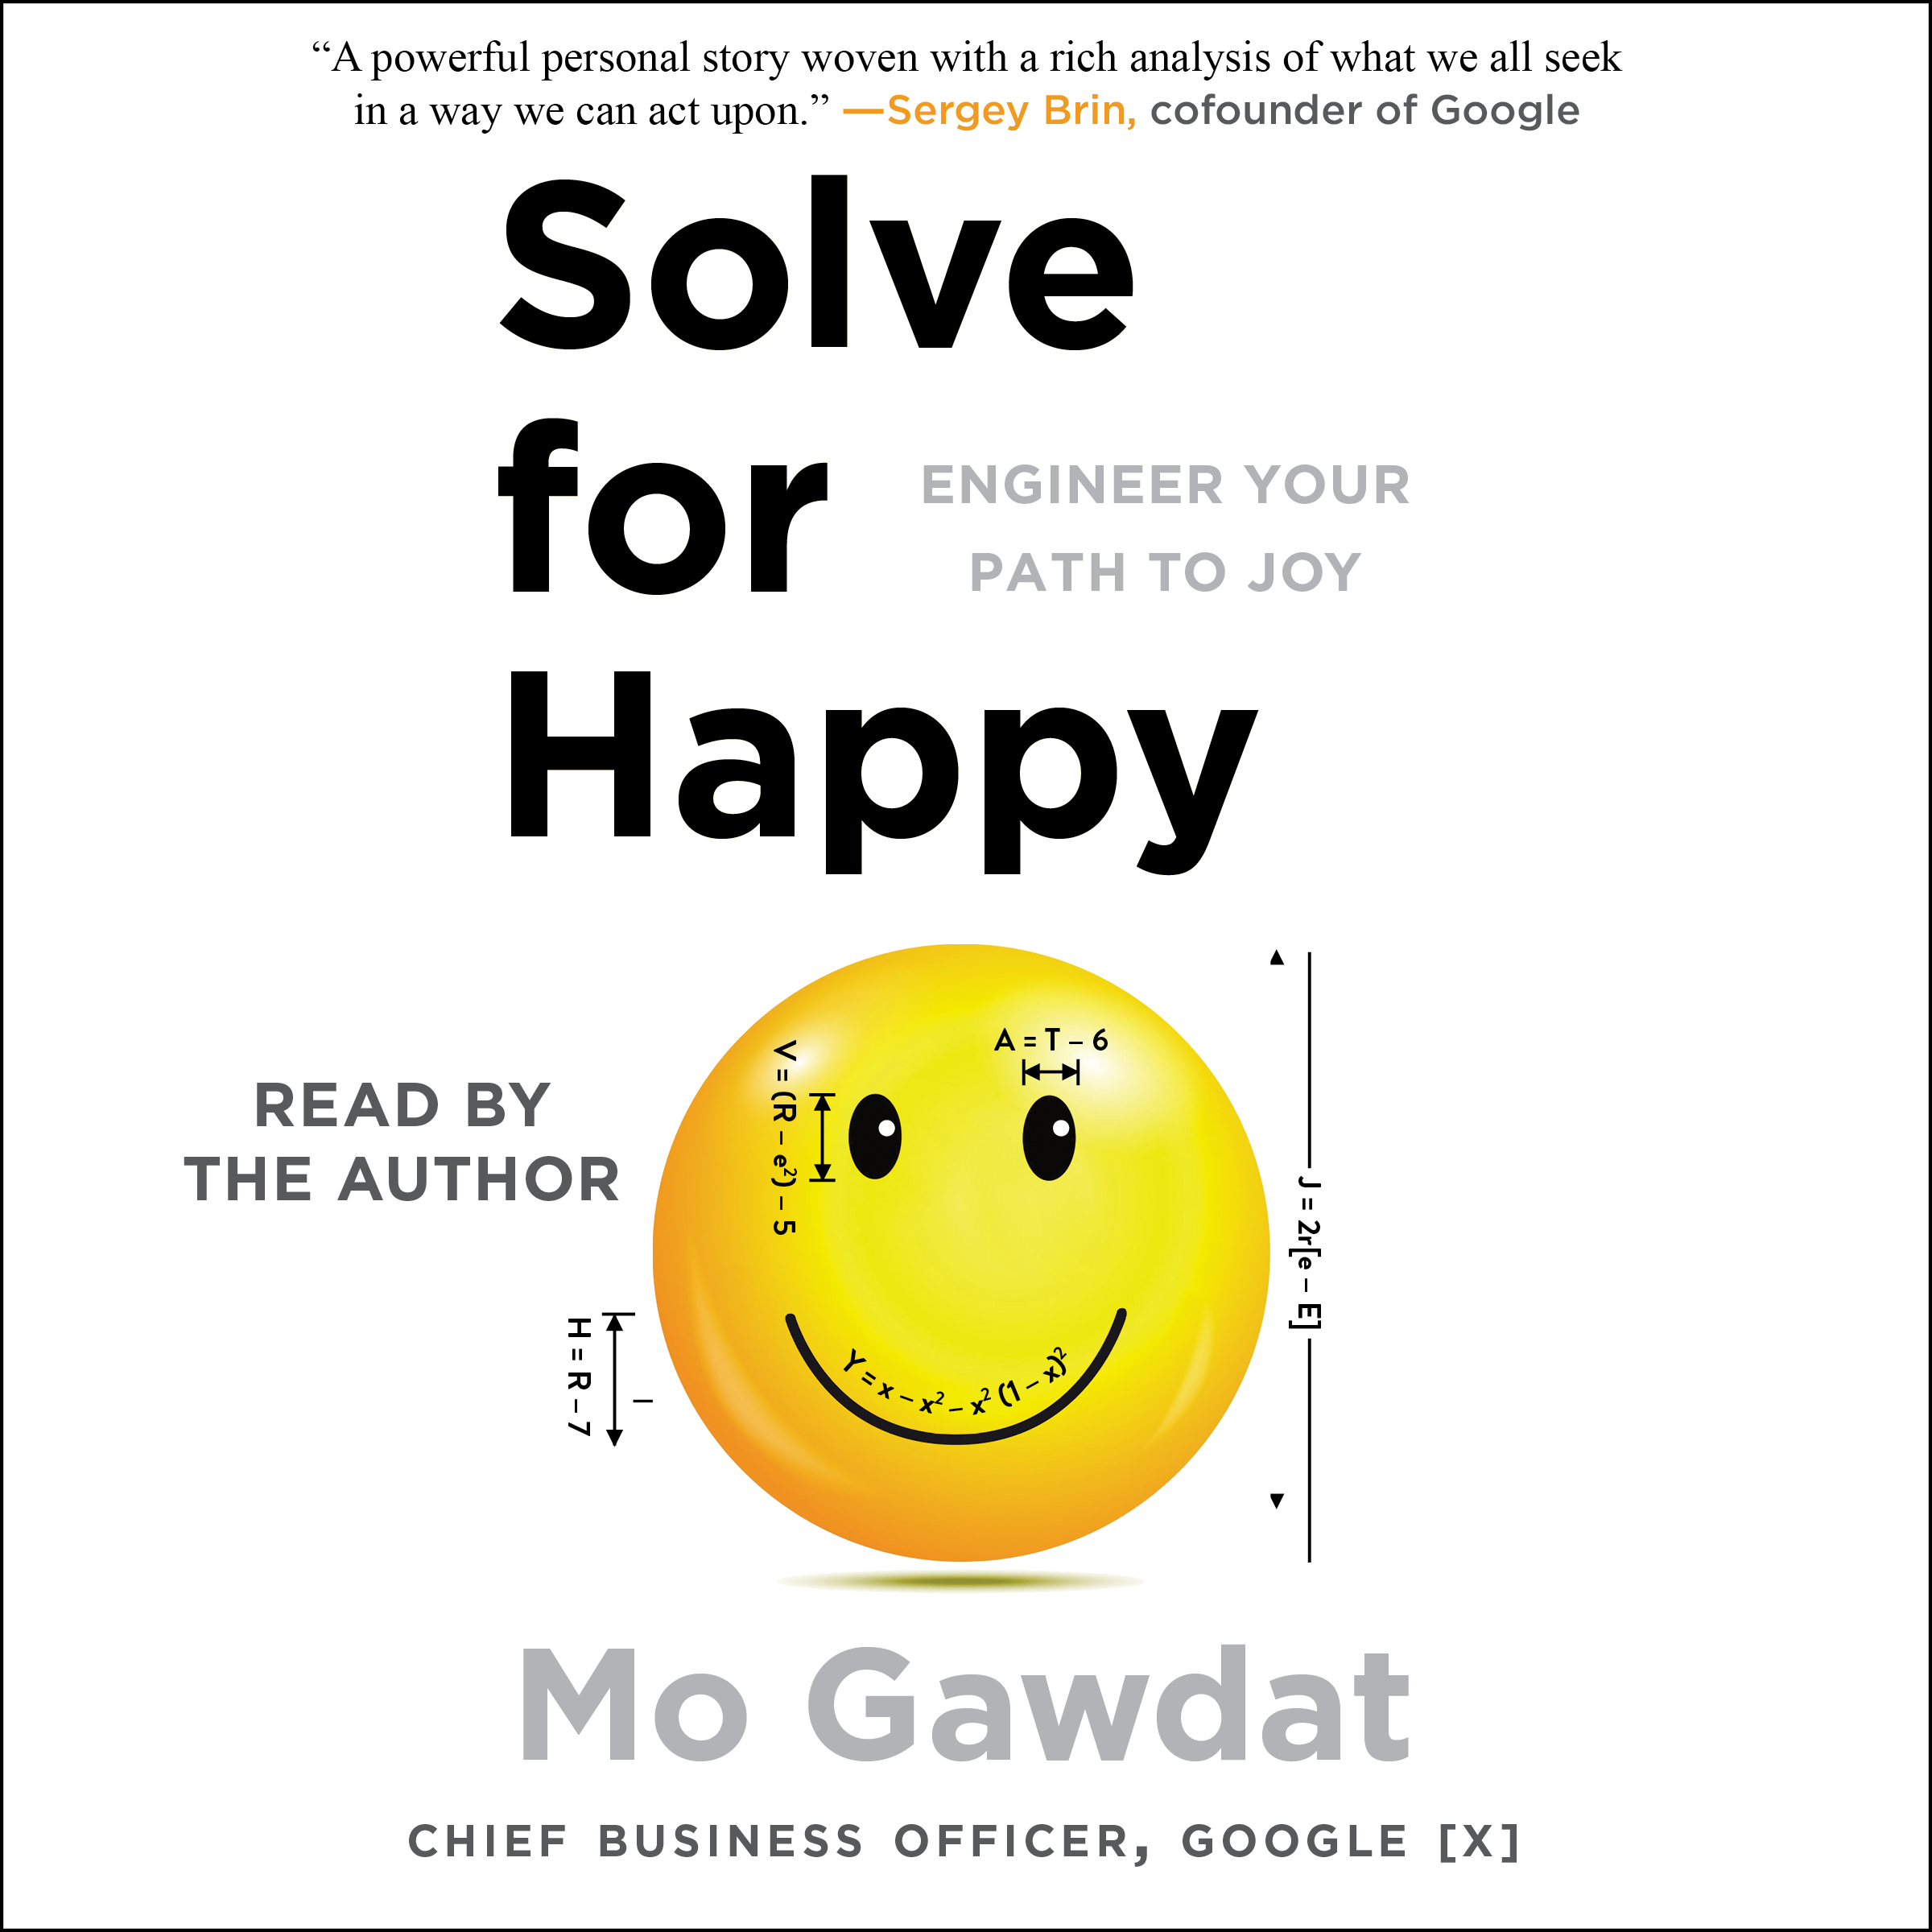 Solve for Happy Audiobook by Mo Gawdat | Official Publisher Page